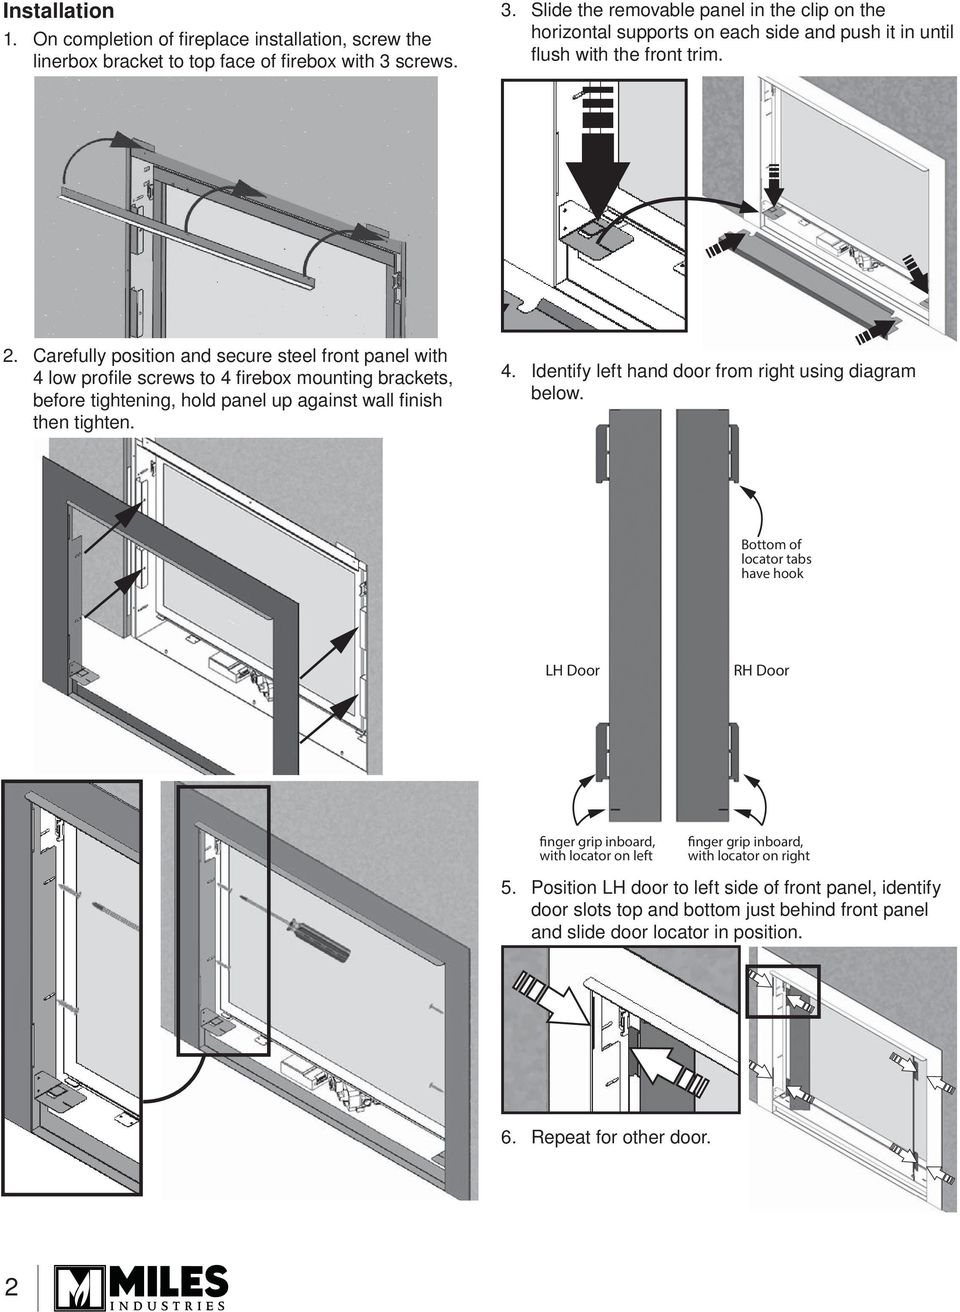 Carefully position and secure steel front panel with 4 low profi le screws to 4 fi rebox mounting brackets, before tightening, hold panel up against wall fi nish then tighten. 4. Identify left hand door from right using diagram below.